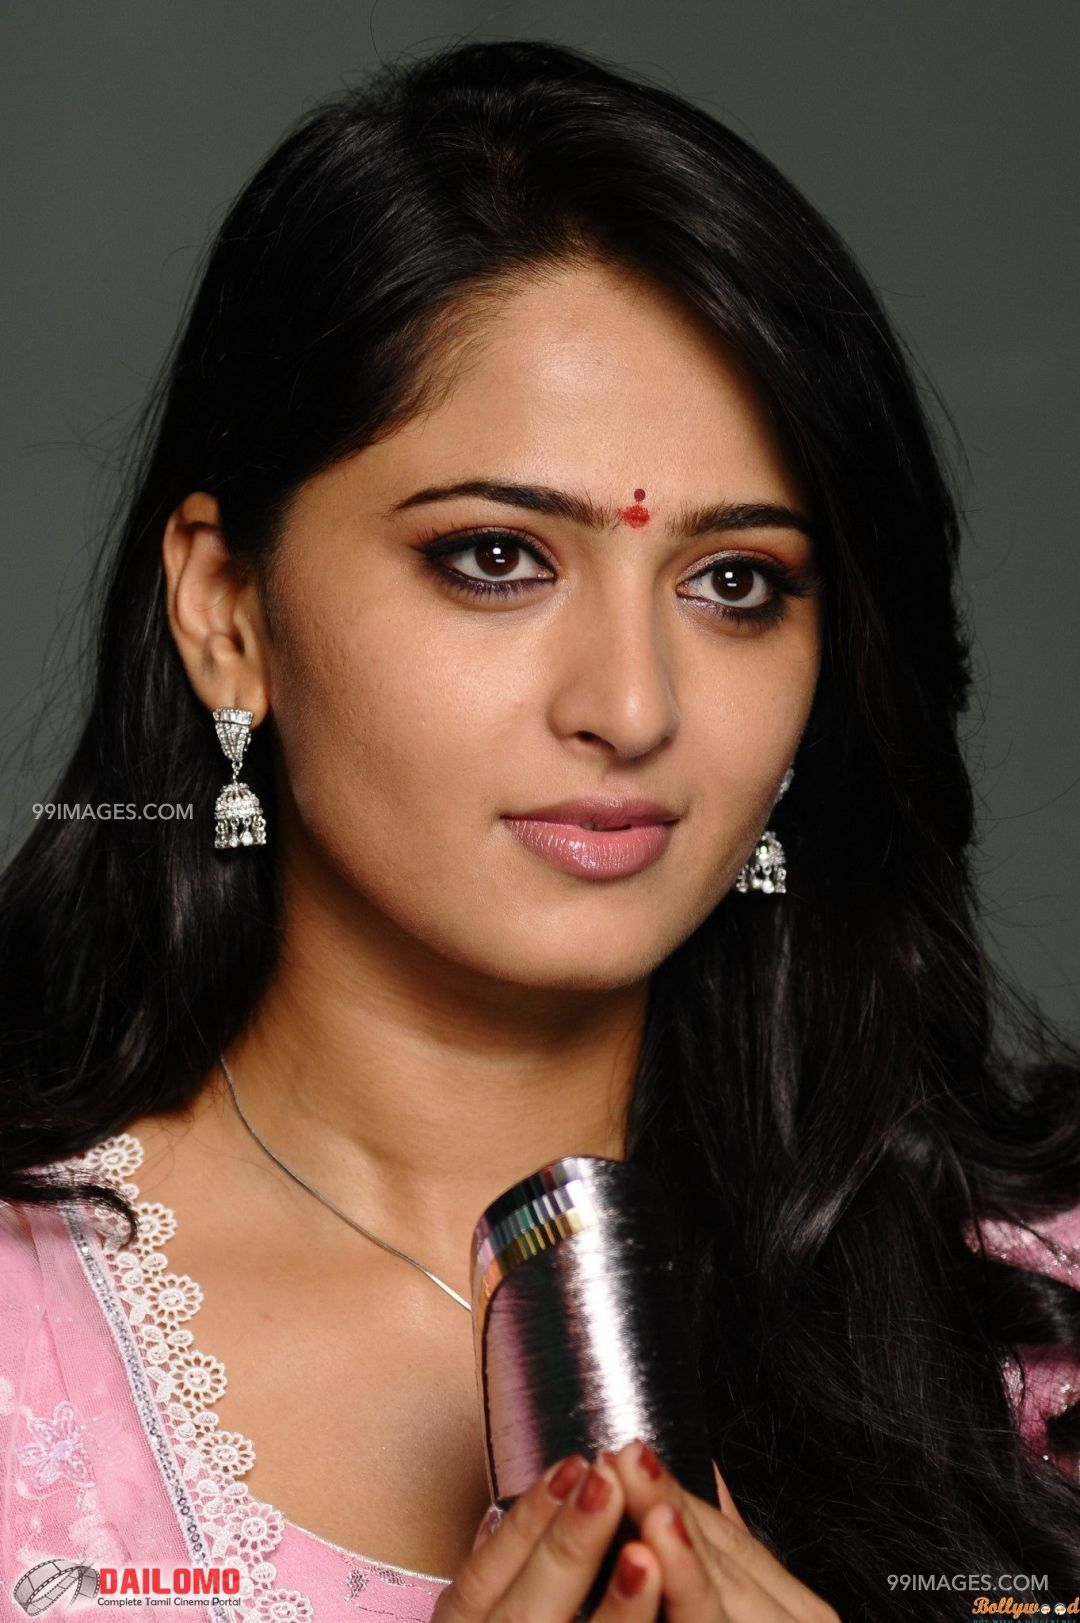 Anushka Shetty Beautiful HD Photoshoot Stills (1080p) (3676) - Anushka Shetty